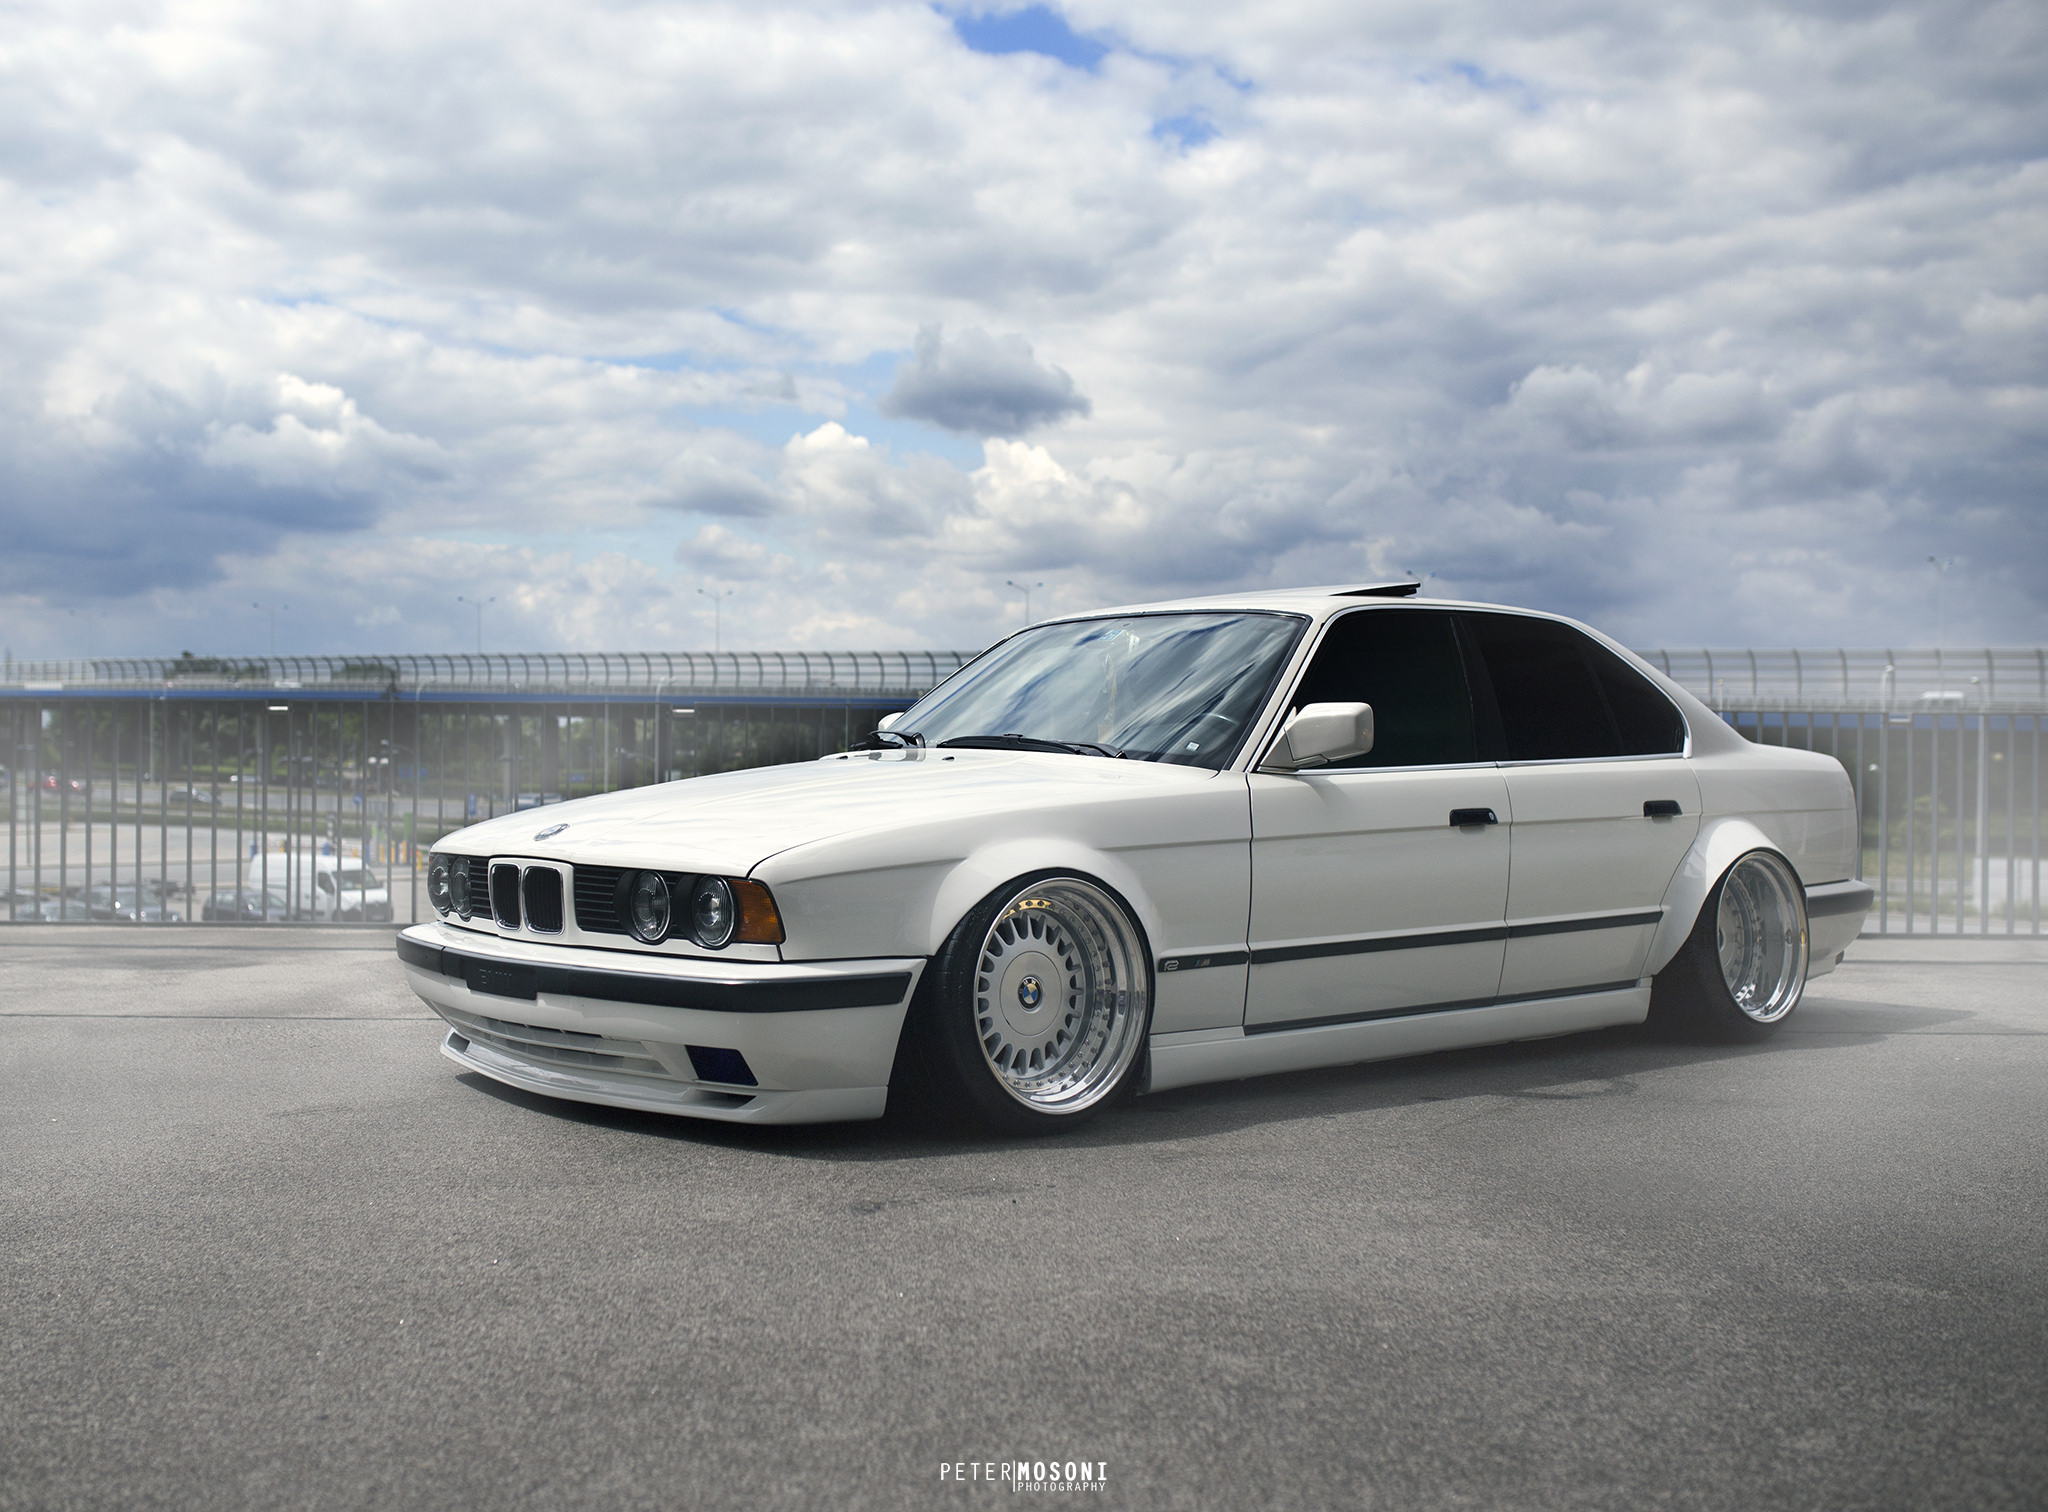 Super Aggressive Bmw E34 Stancenation Form Gt Function